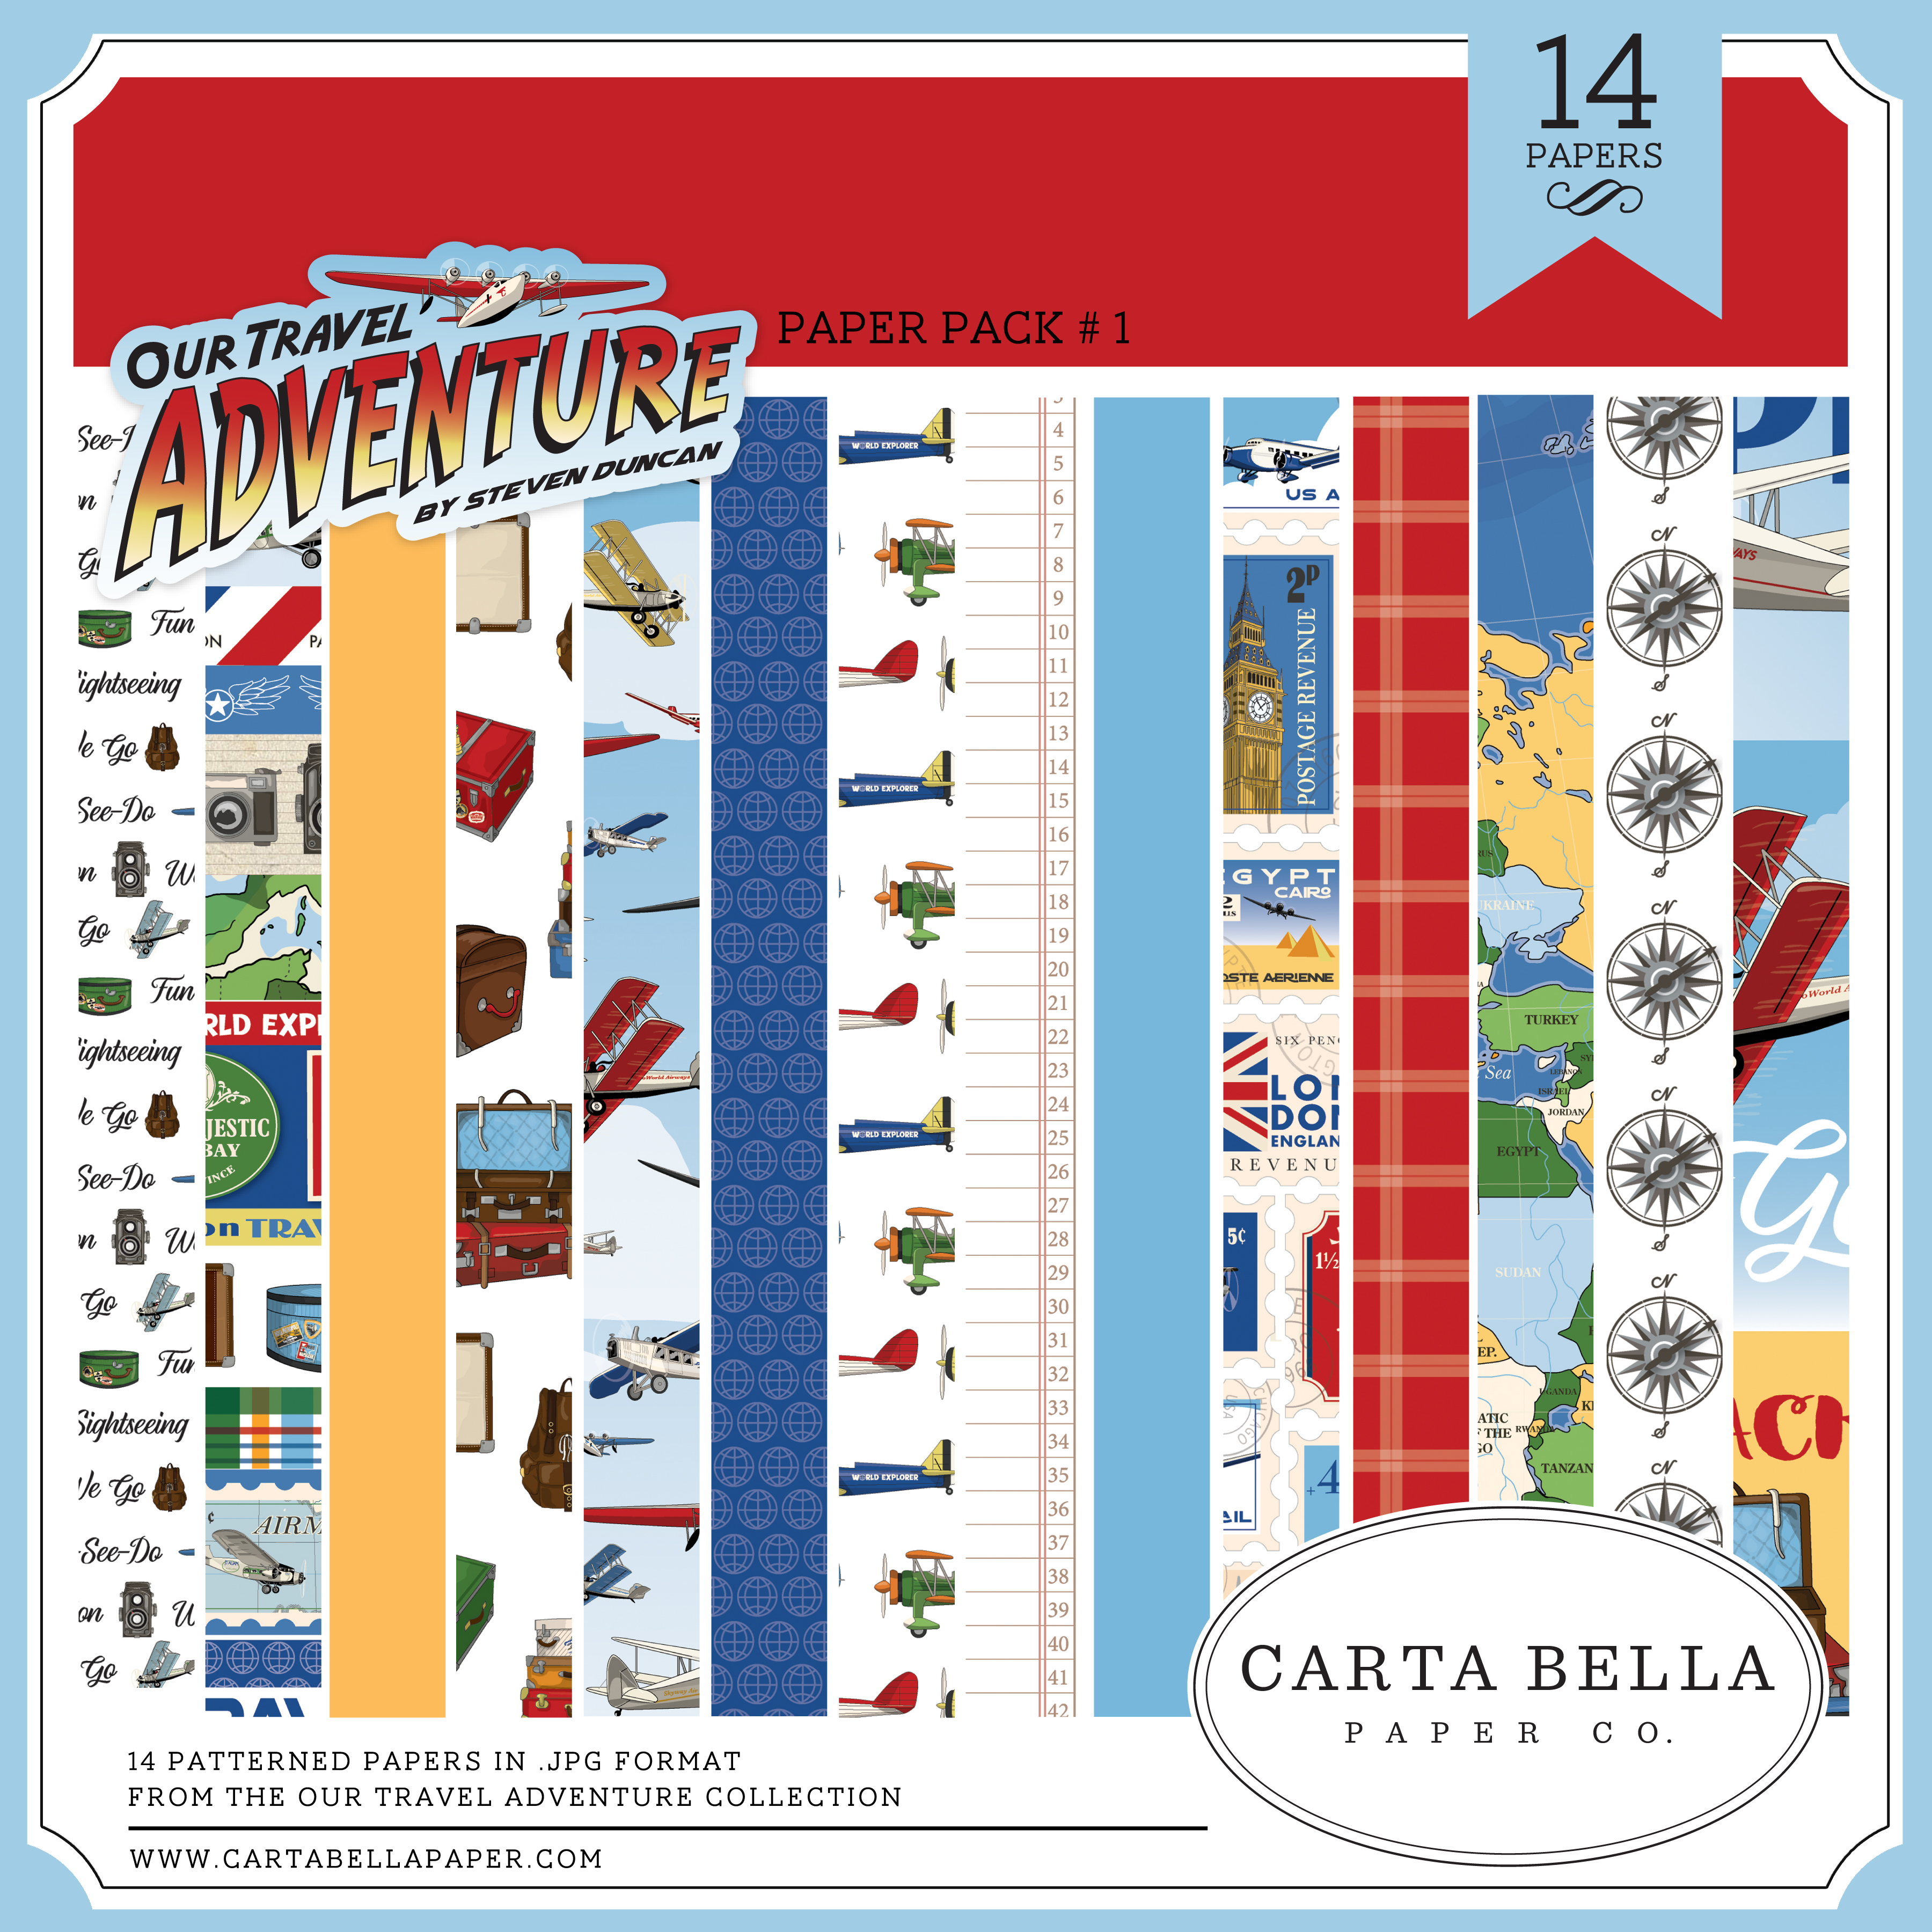 Our Travel Adventure Paper Pack #1